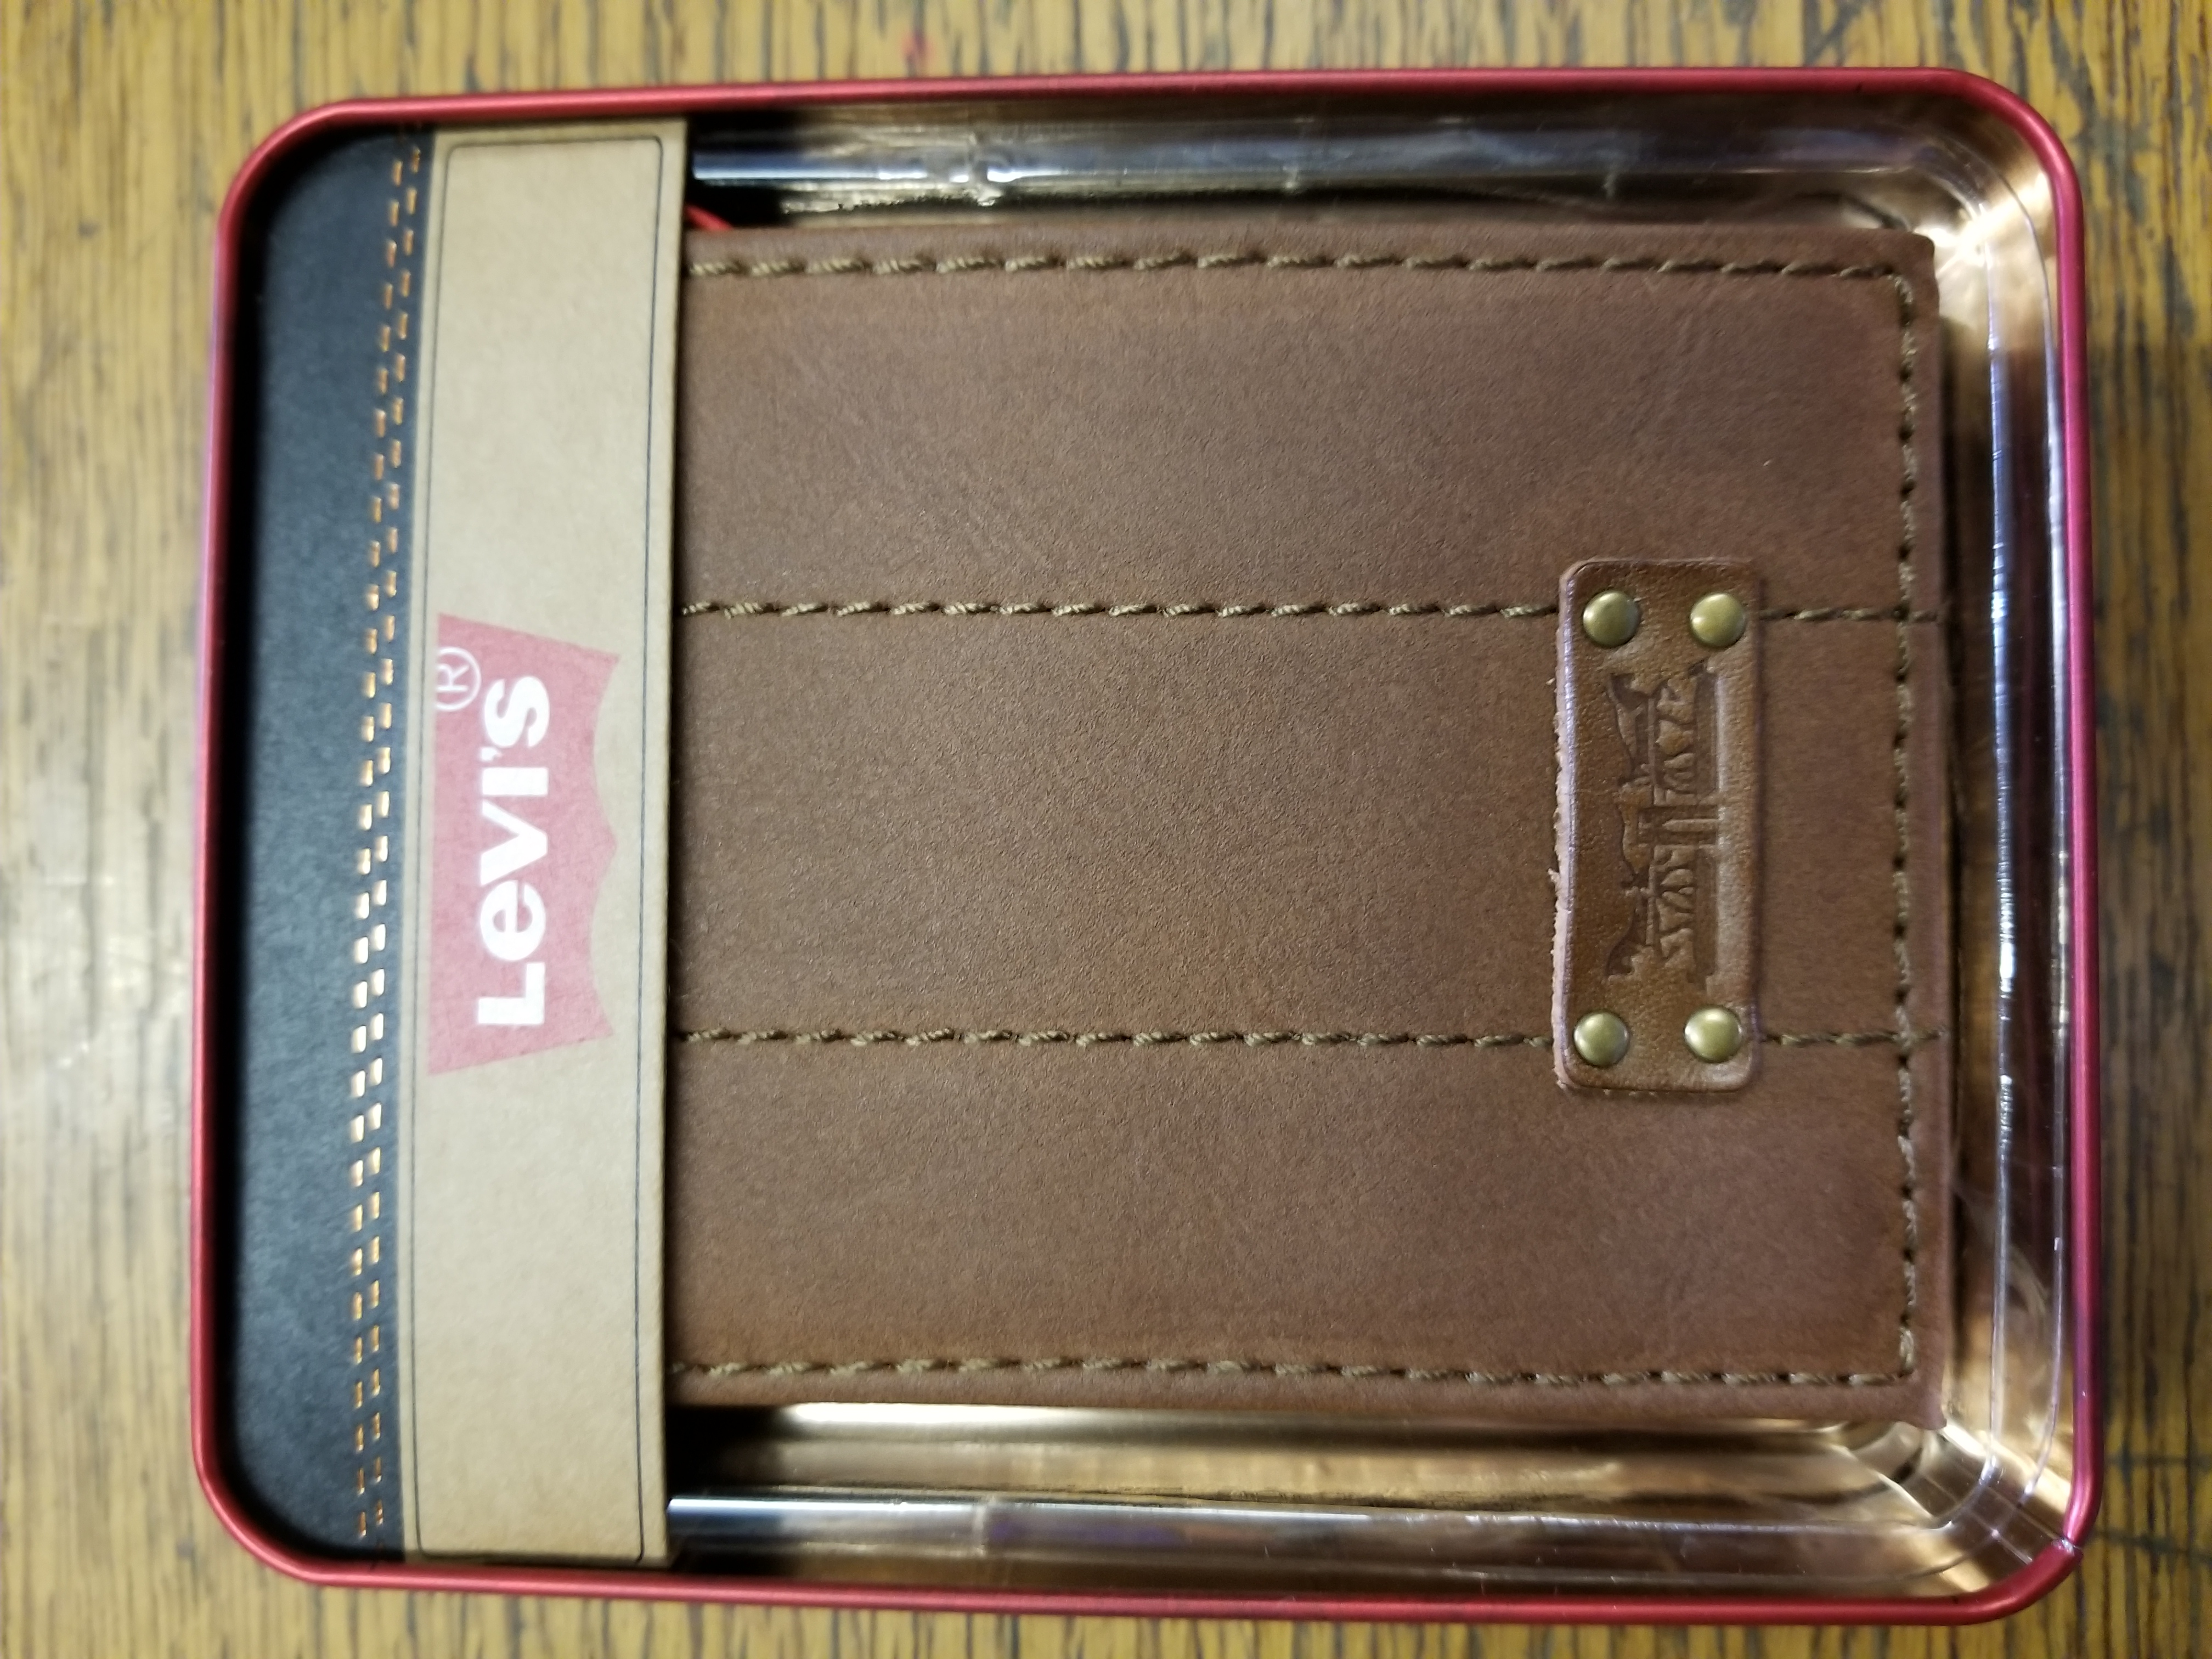 Levi's Leather Wallet Billfold TWO HORSES - TAN (31LV2216)